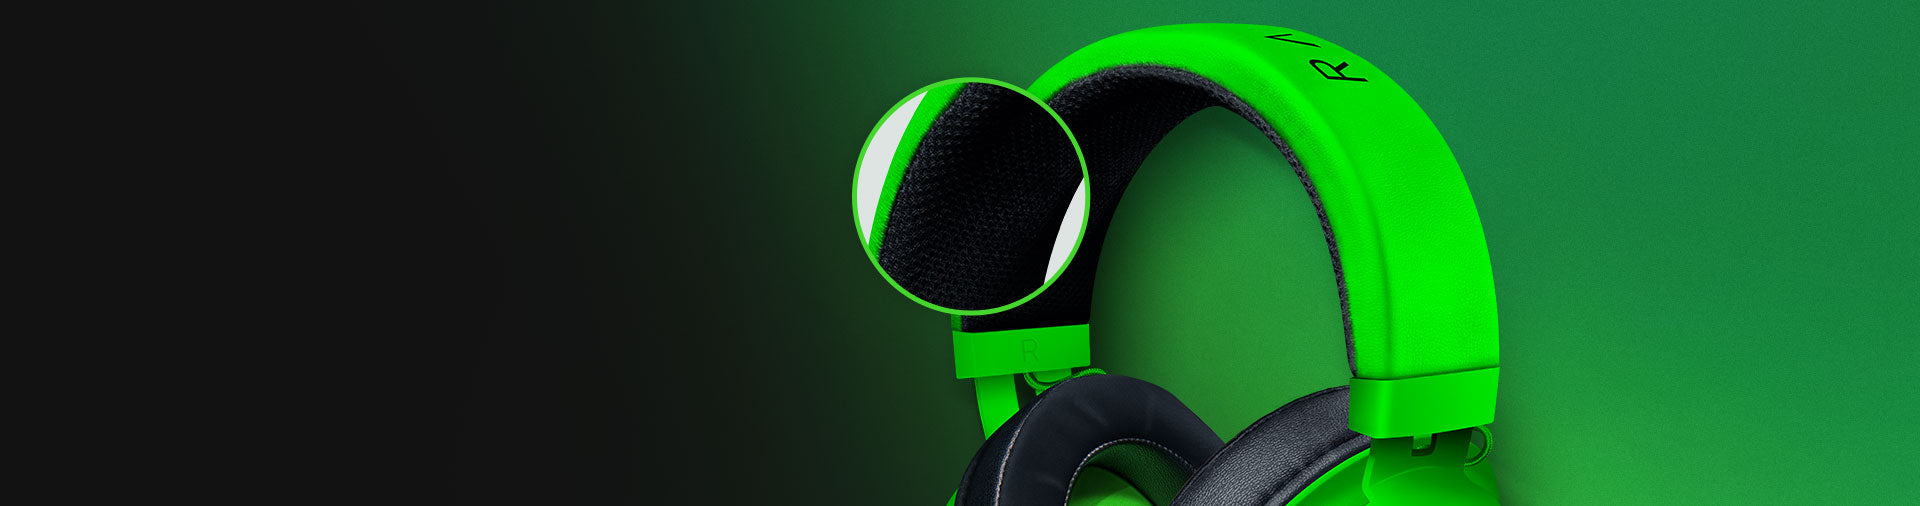 THICKER HEADBAND PADDING - We've improved the headband padding and made it even thicker so it relieves more pressure on your head for long-lasting comfort. The Bauxite aluminum frame of the Razer Kraken makes it lightweight, flexible, and extremely durable.